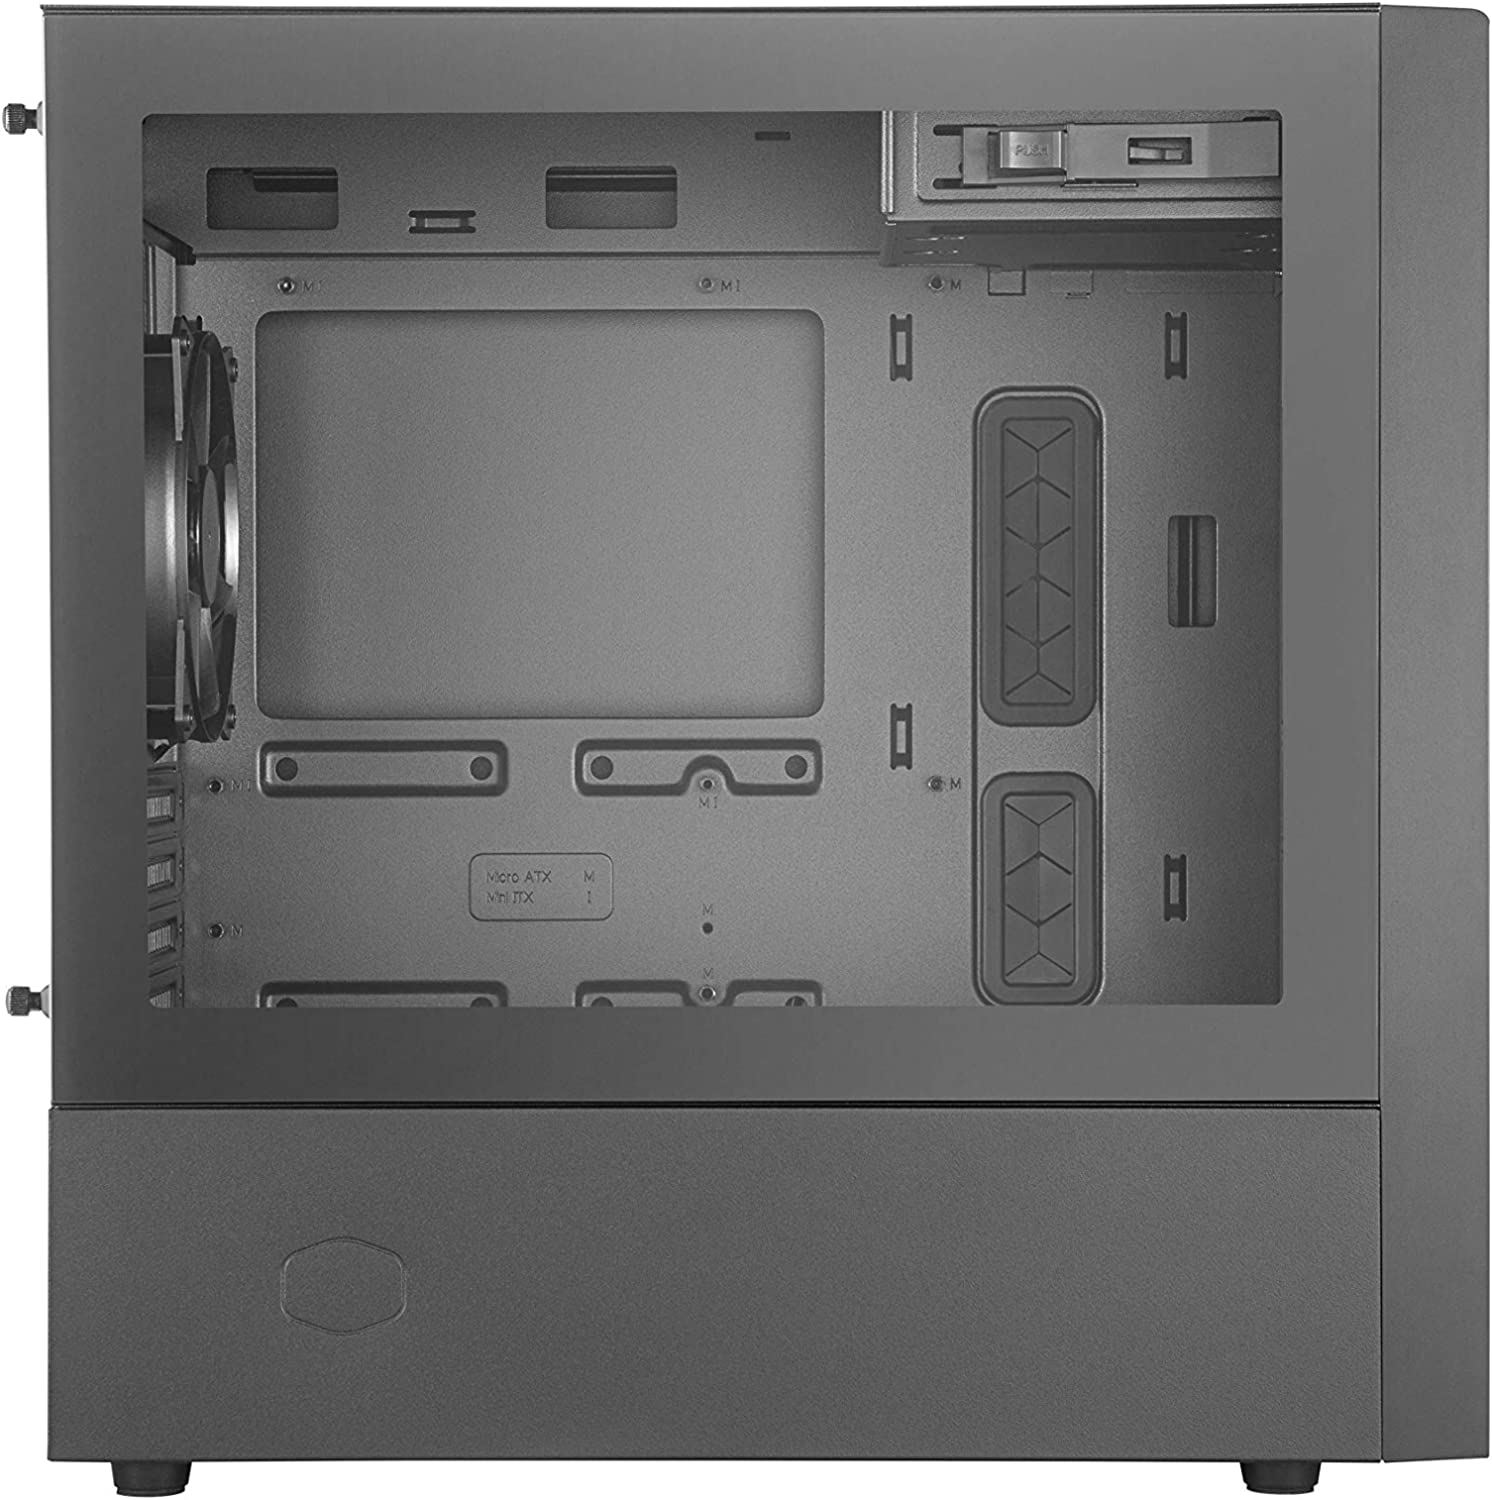 Cooler Master Silencio S600 ATX Mid-Tower with Sound-Dampening Material SD Card Reader Sound-Dampened Solid Steel Side Panel Reversible Front Panel and 2X 120mm PWM Silencio FP Fans